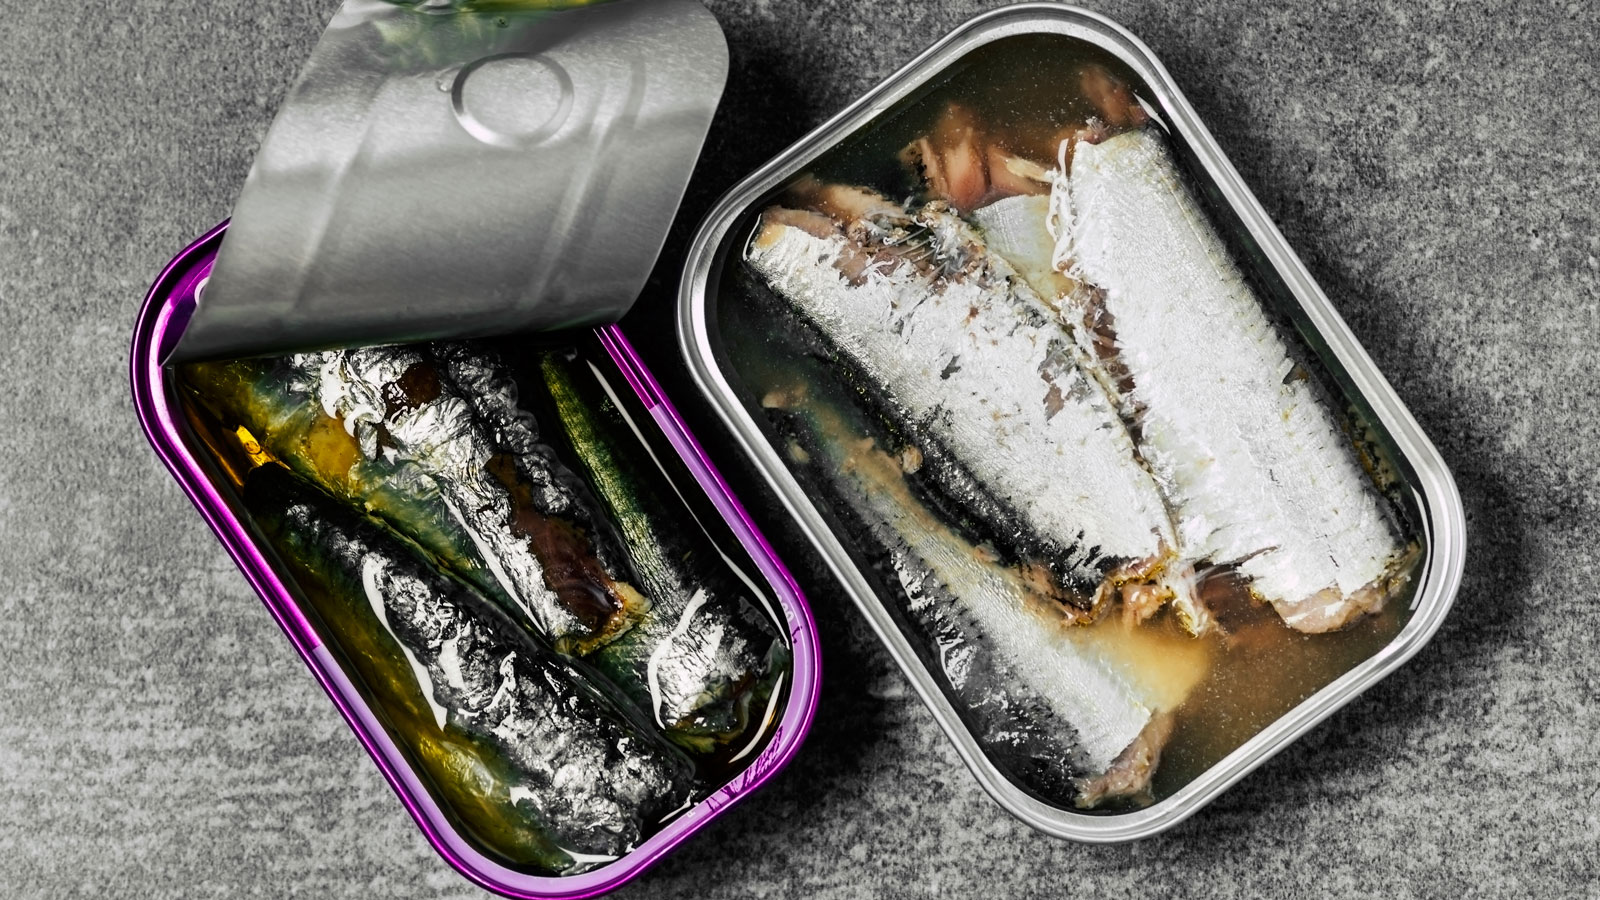 canned-fish-sardines-anchovies-FT-BLOG0617.jpg